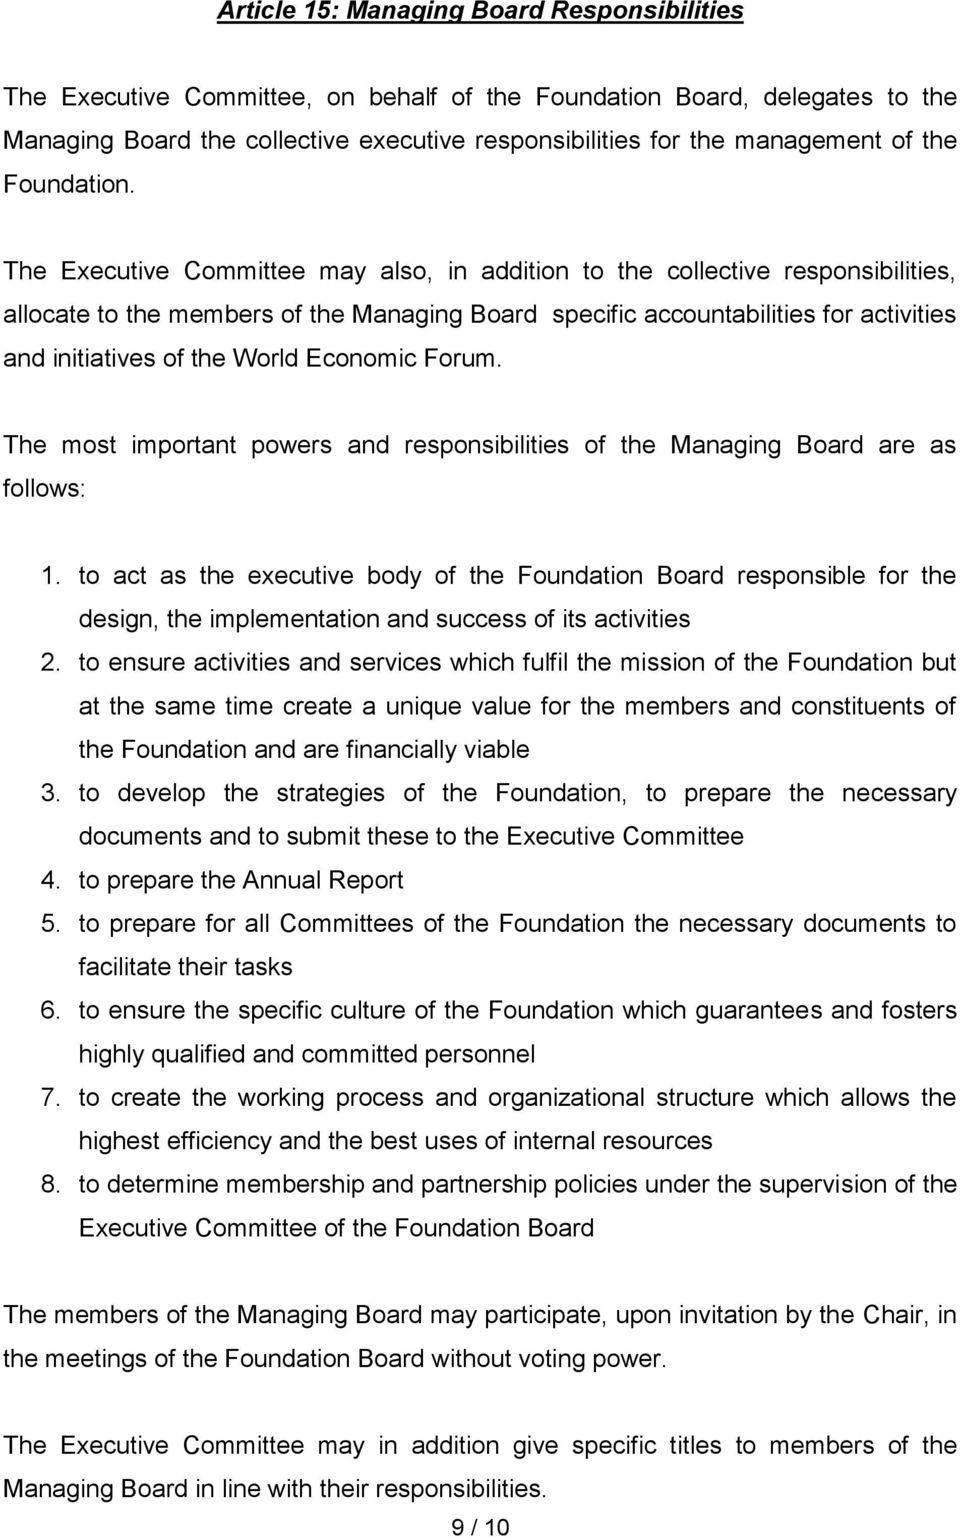 The Executive Committee may also, in addition to the collective responsibilities, allocate to the members of the Managing Board specific accountabilities for activities and initiatives of the World